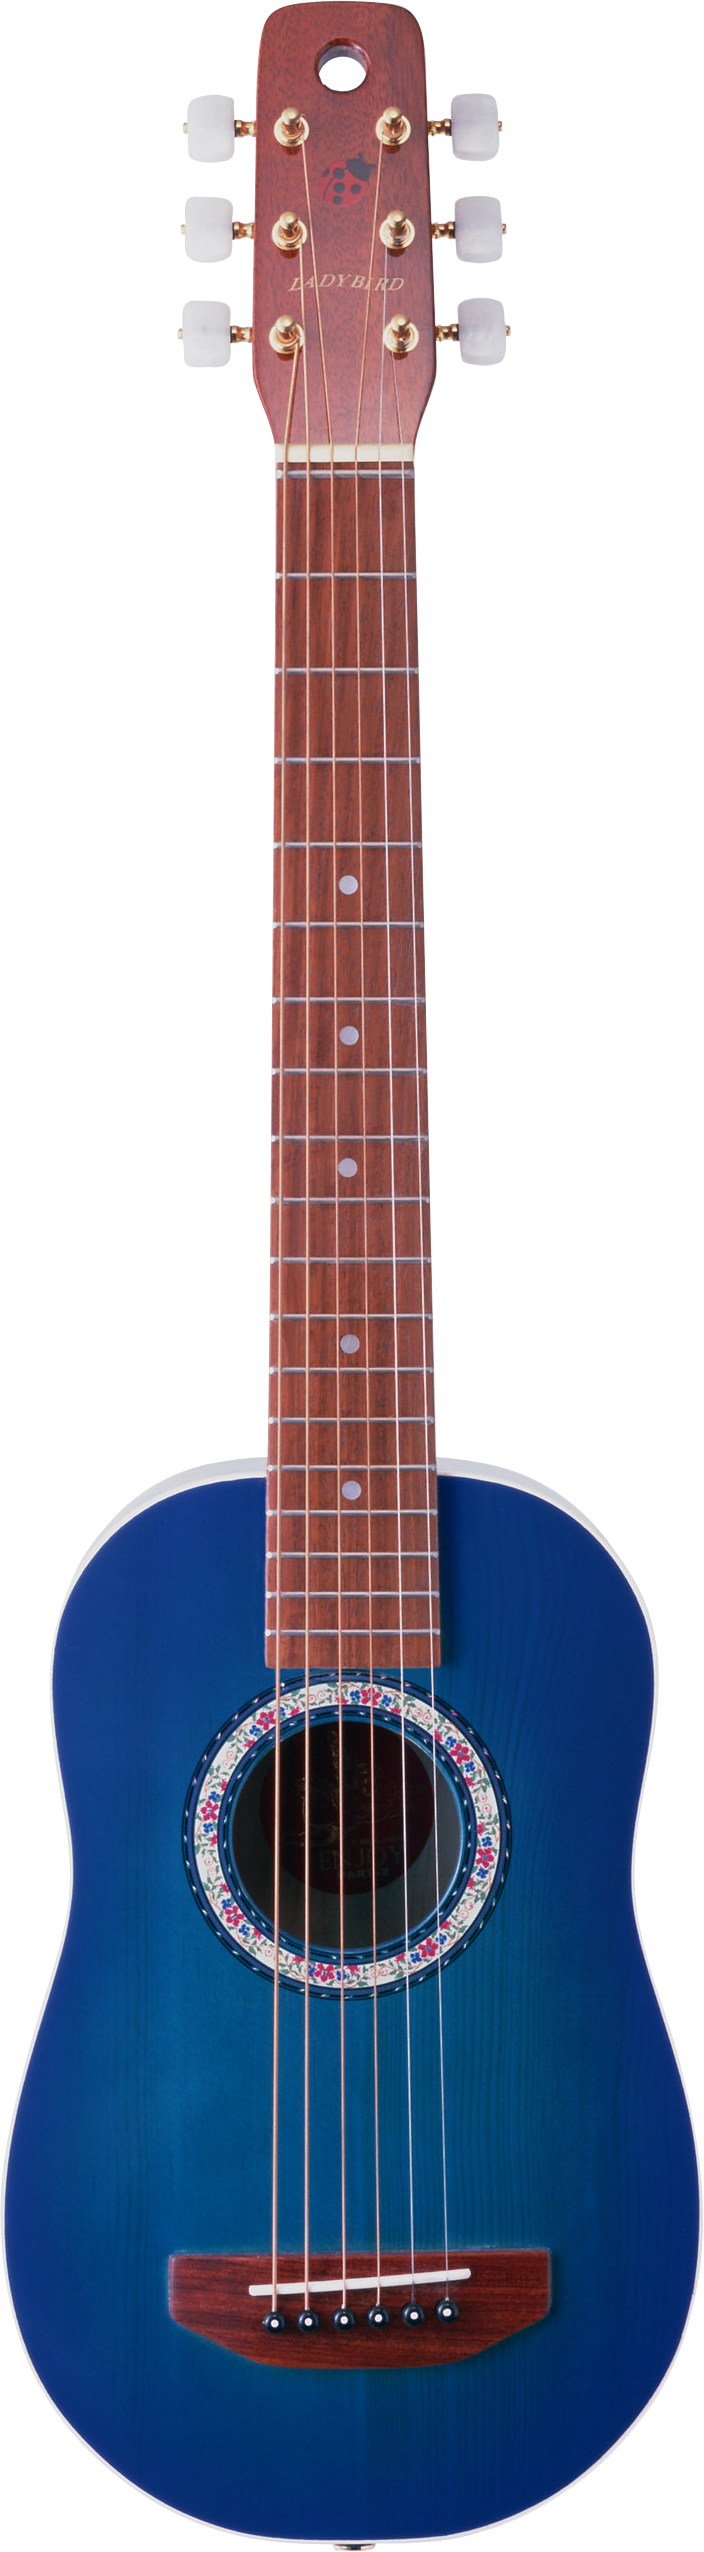 Blue Electric Guitar Png Image Blue Electric Guitar Acoustic Guitar Semi Acoustic Guitar